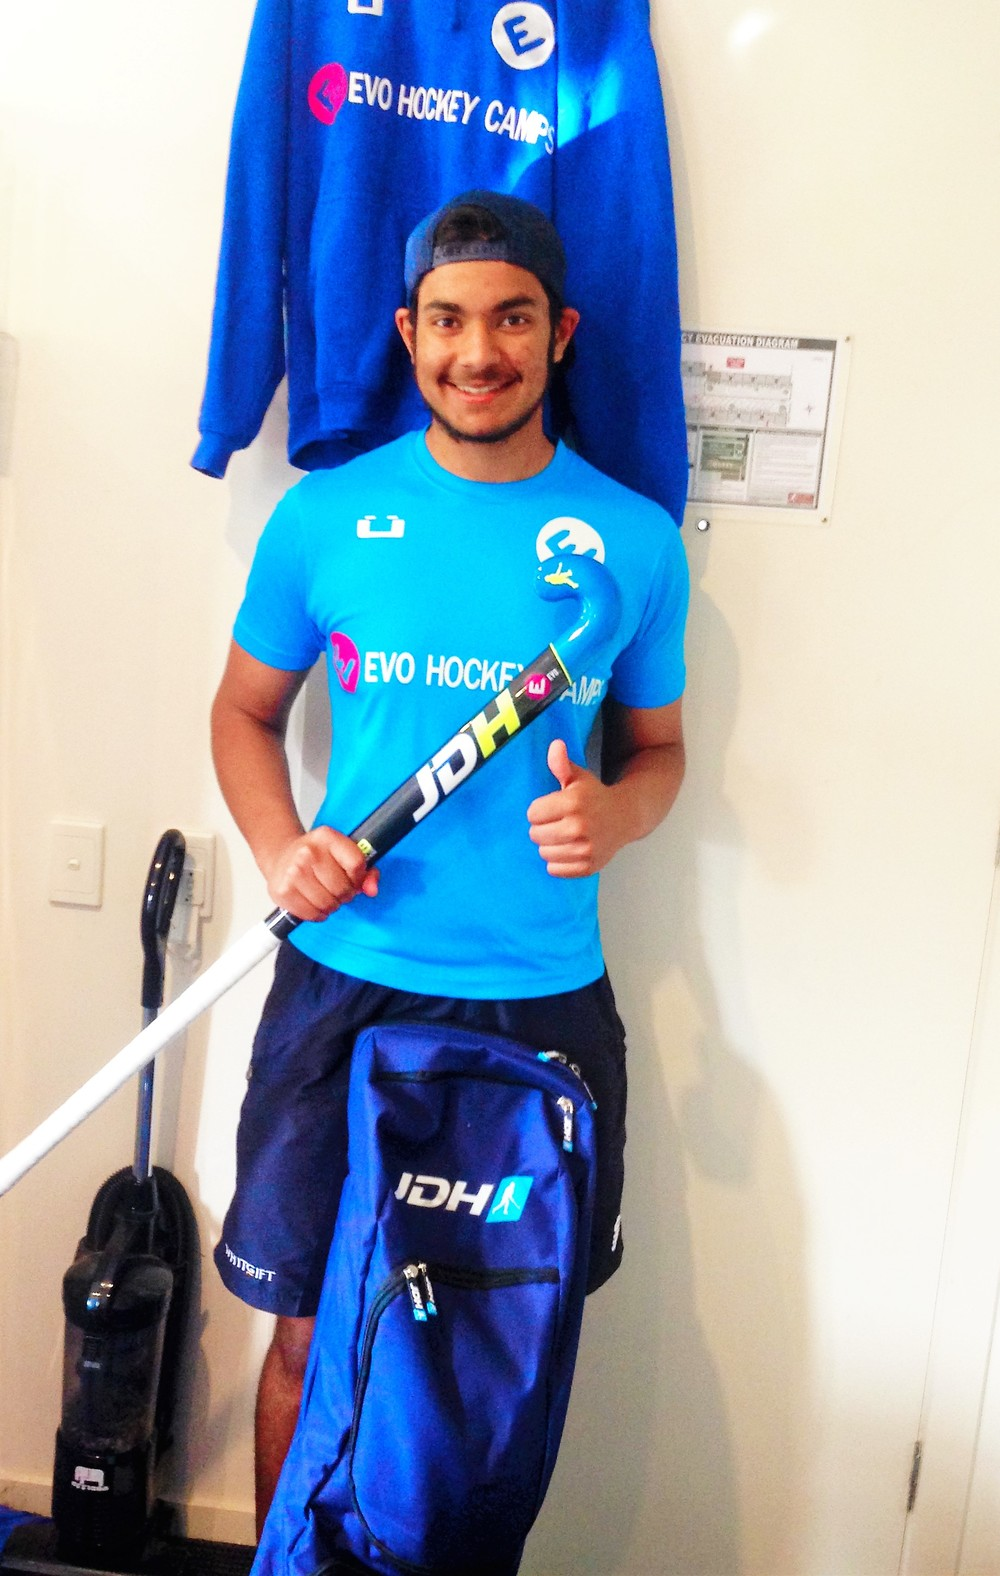 Johann with his EVO Hockey & JDH gear